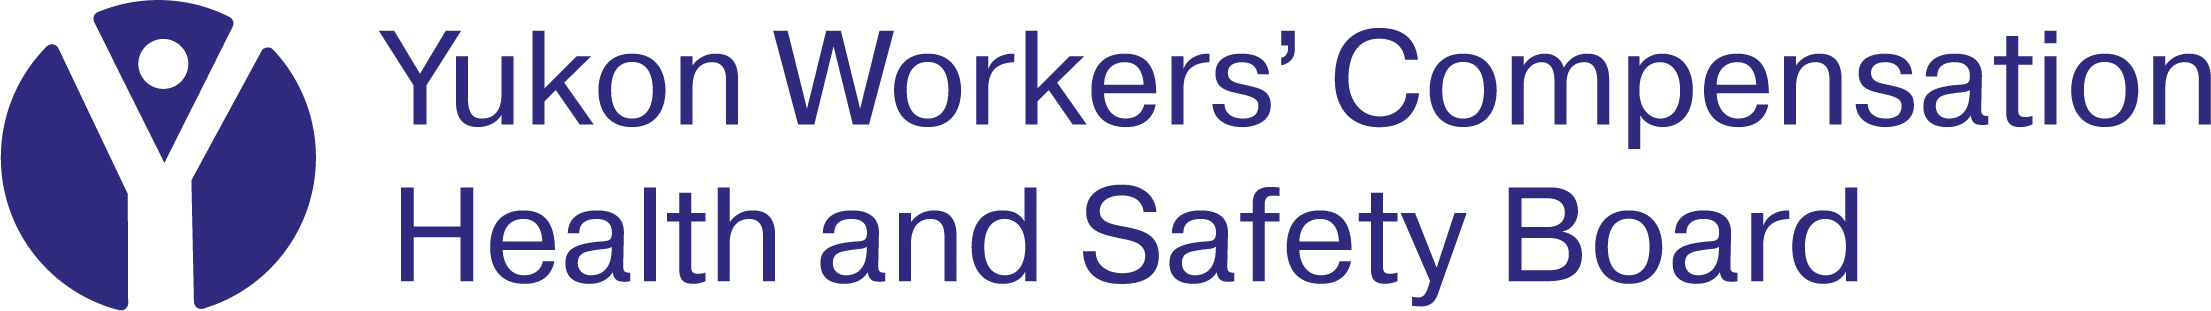 Yukon Worker's Compensation Health and Safety Board Logo